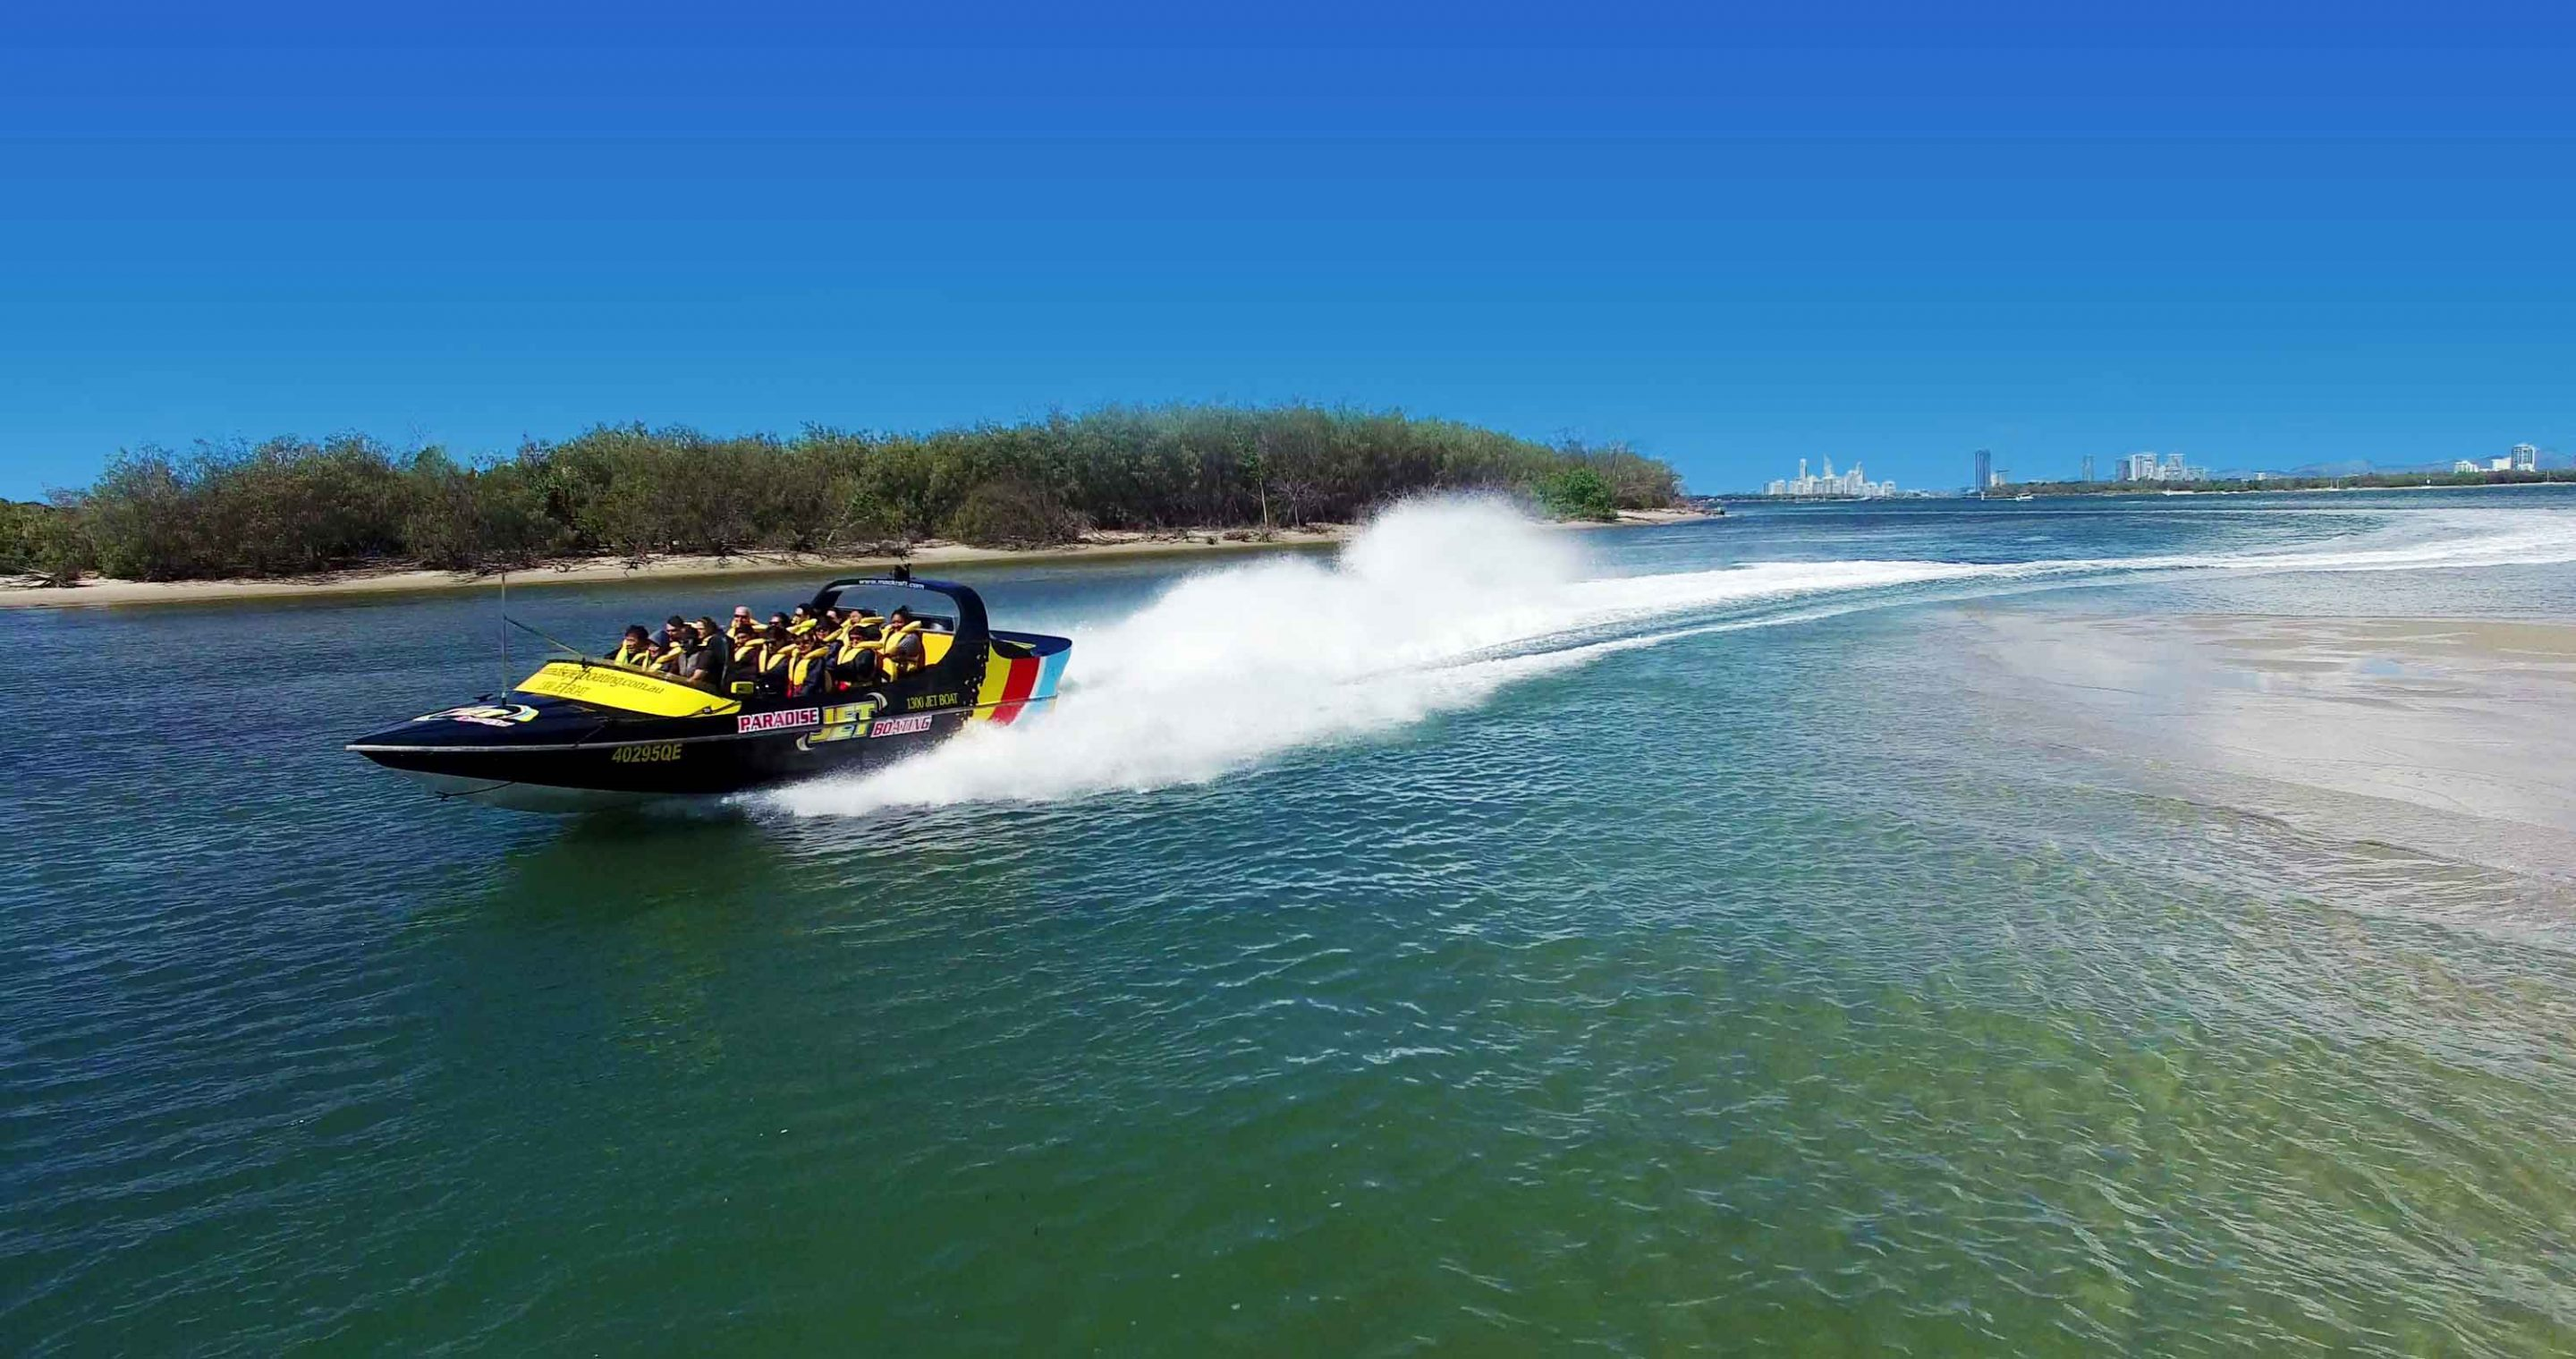 Jetboat full with customers zooming across the water